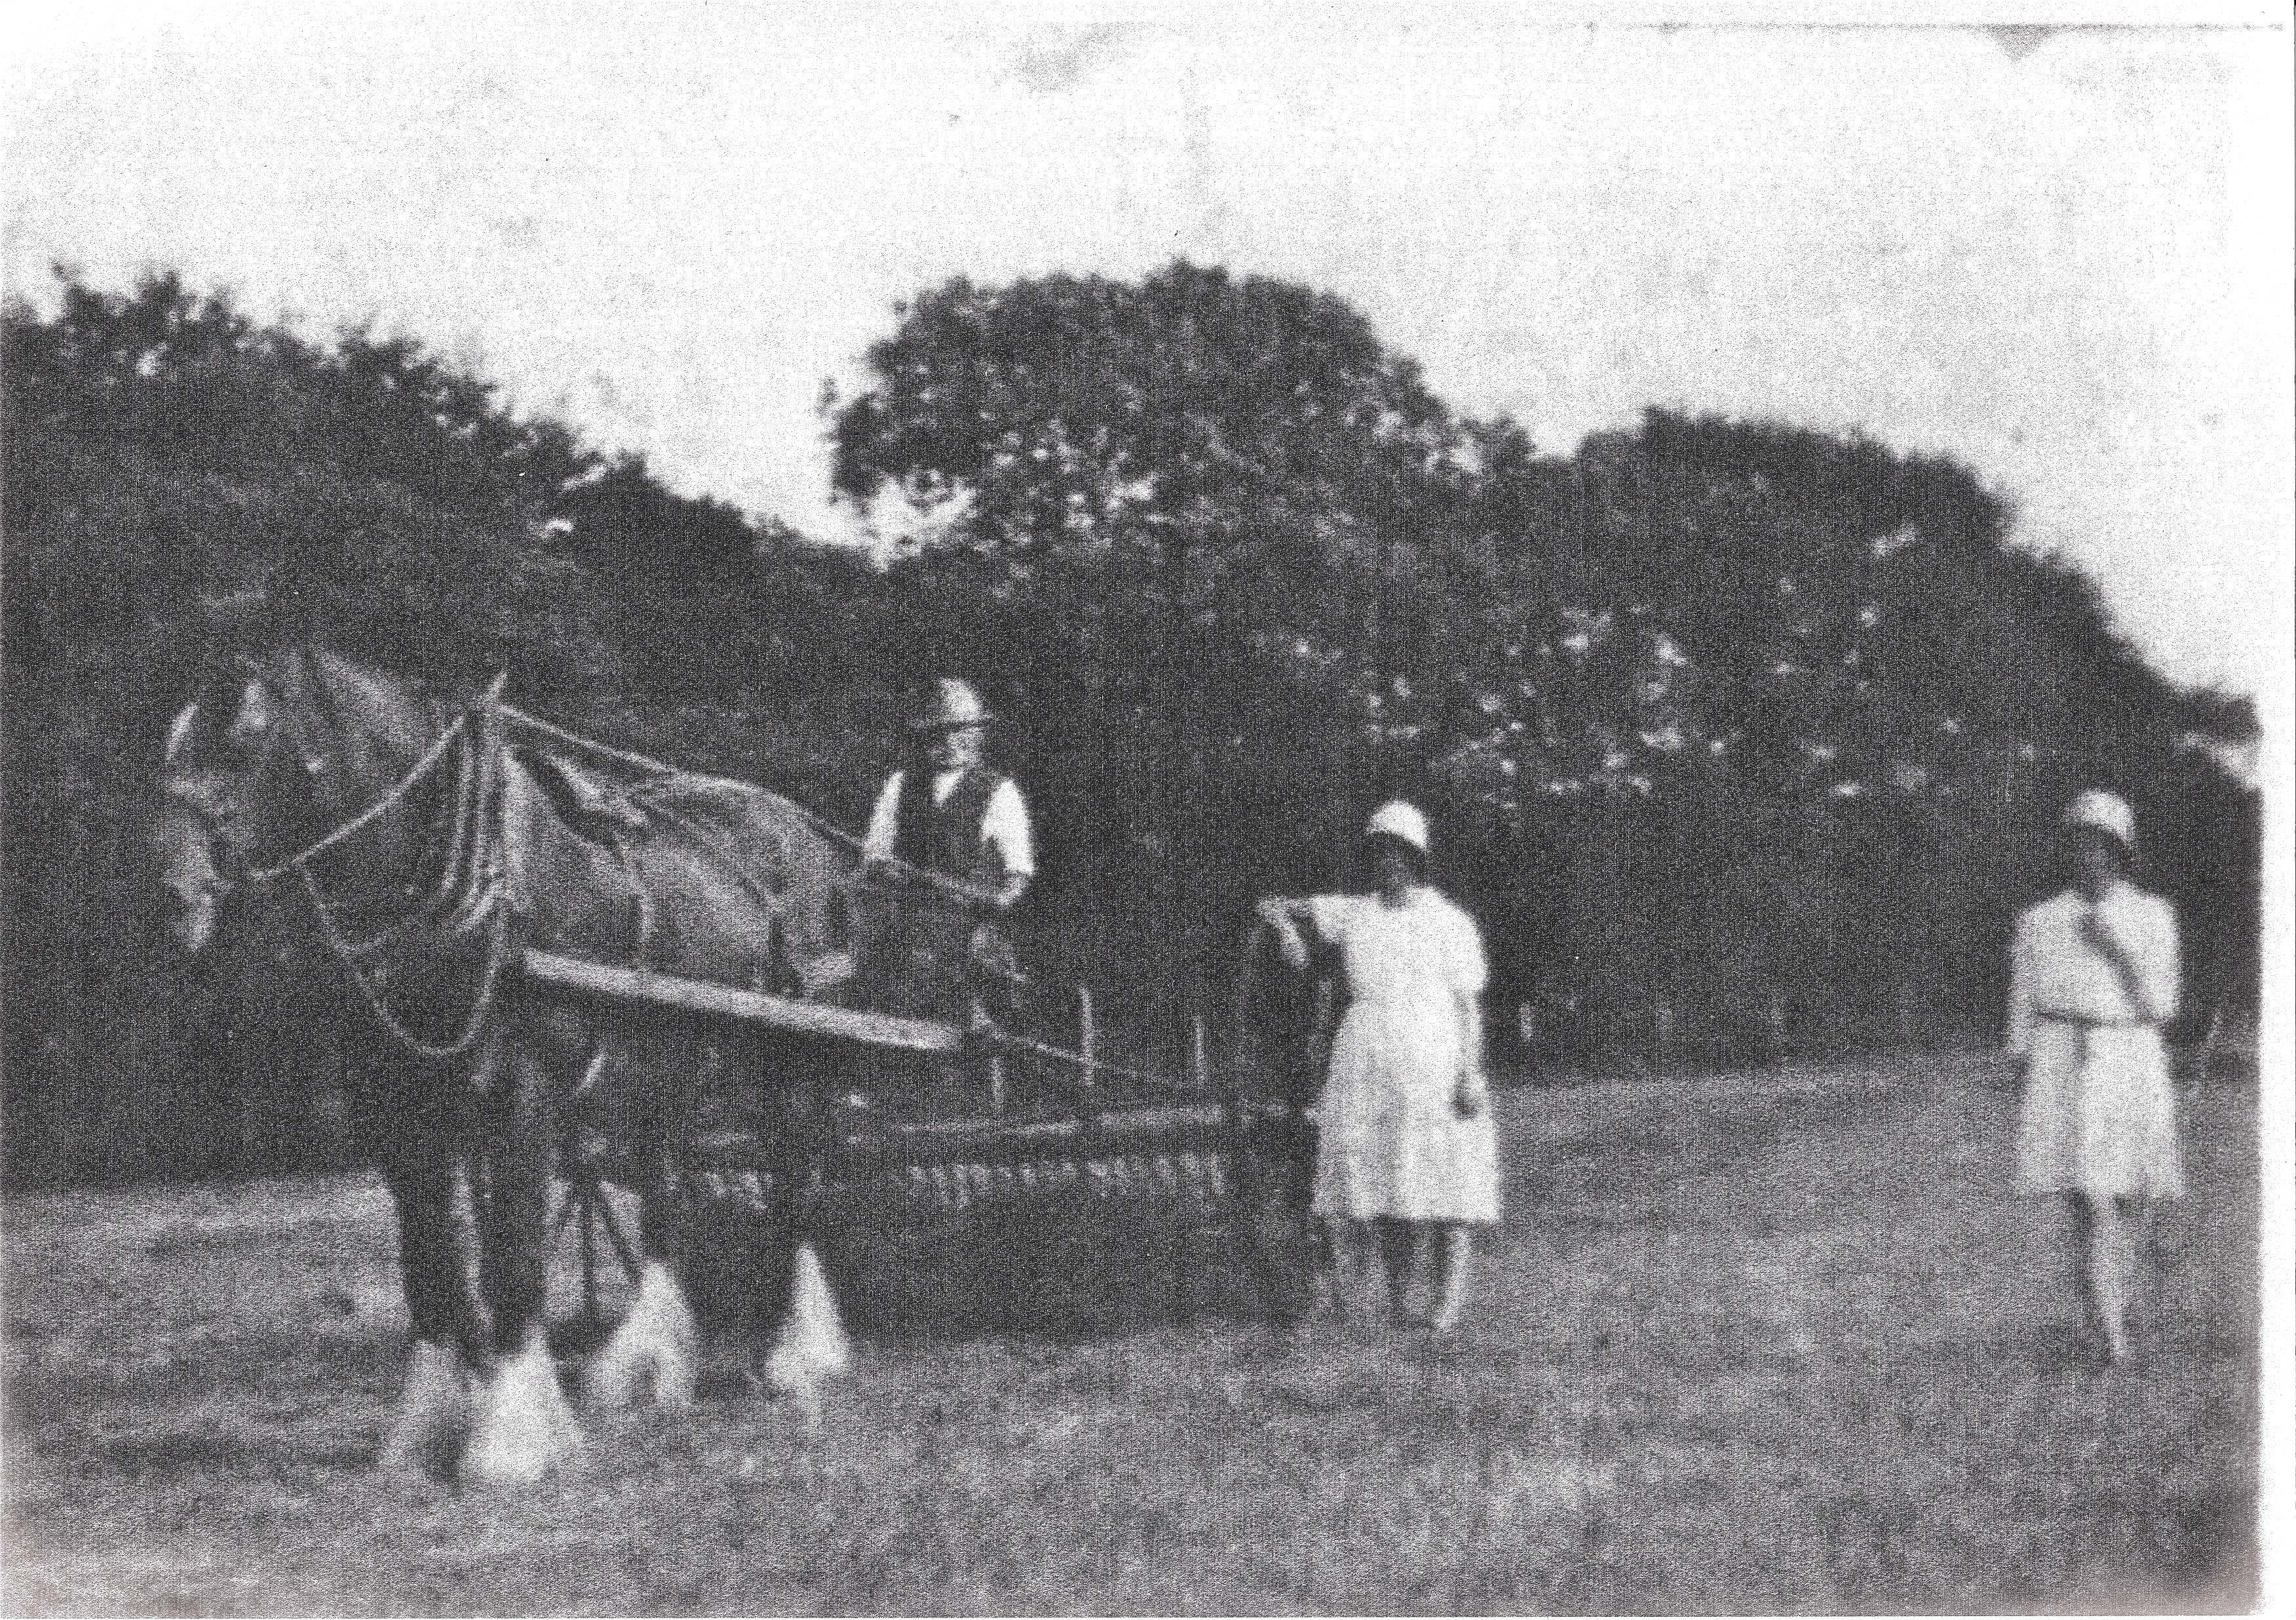 Horse and cart with man and two women